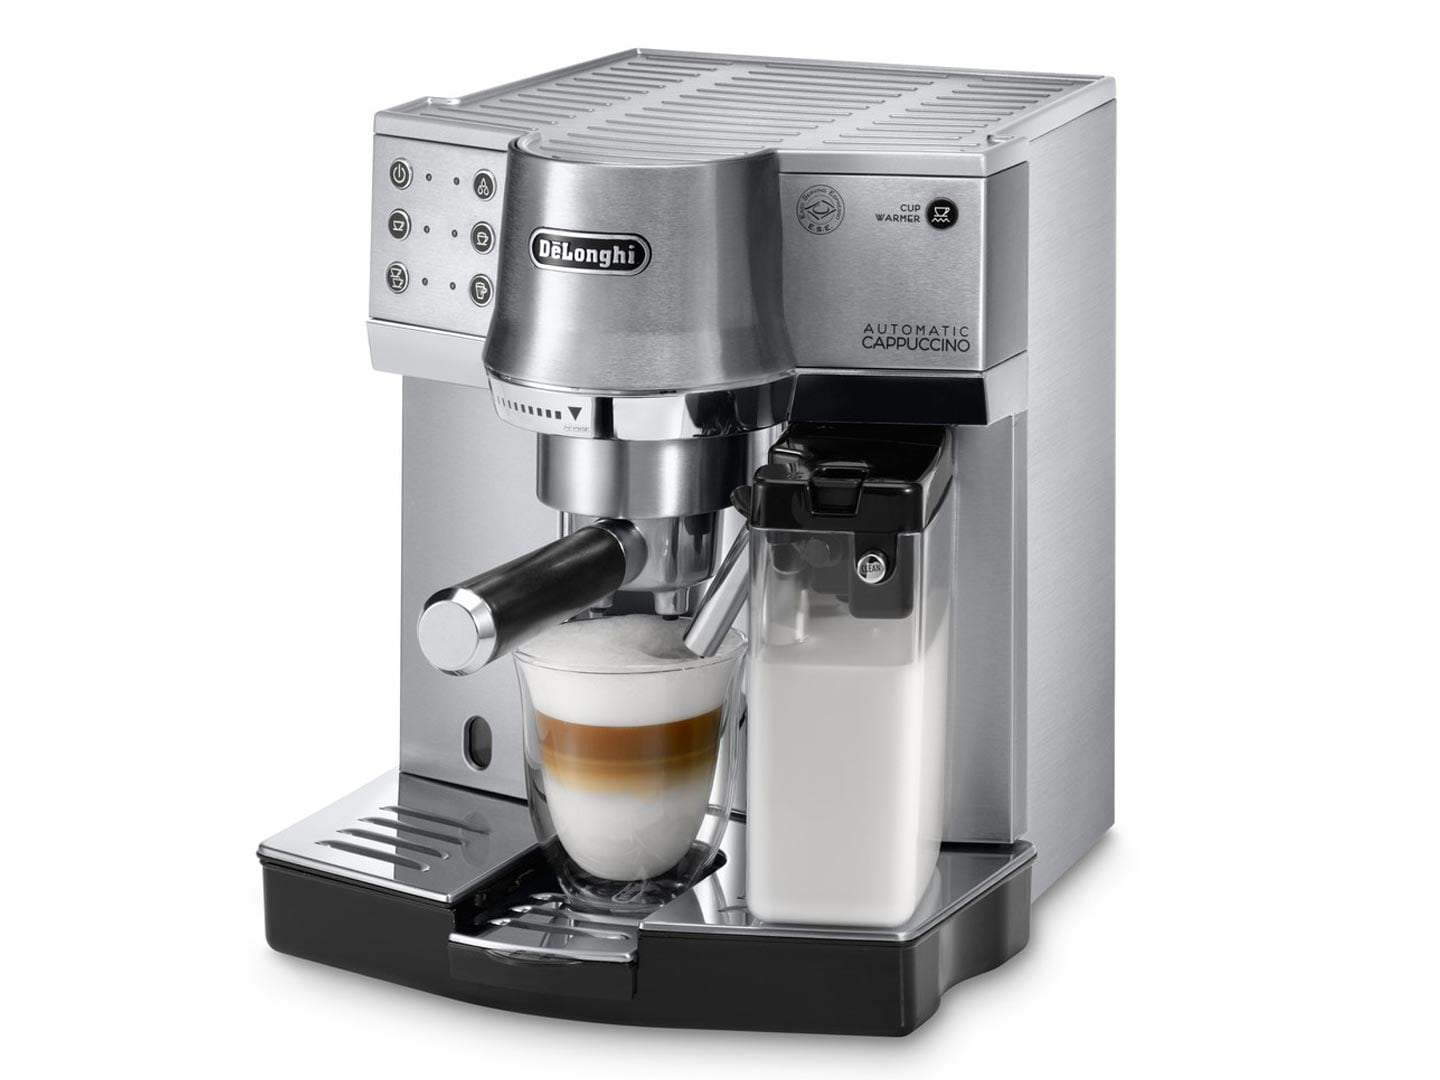 EC860MPACK Pump Espresso Machine with Bonus Grinder